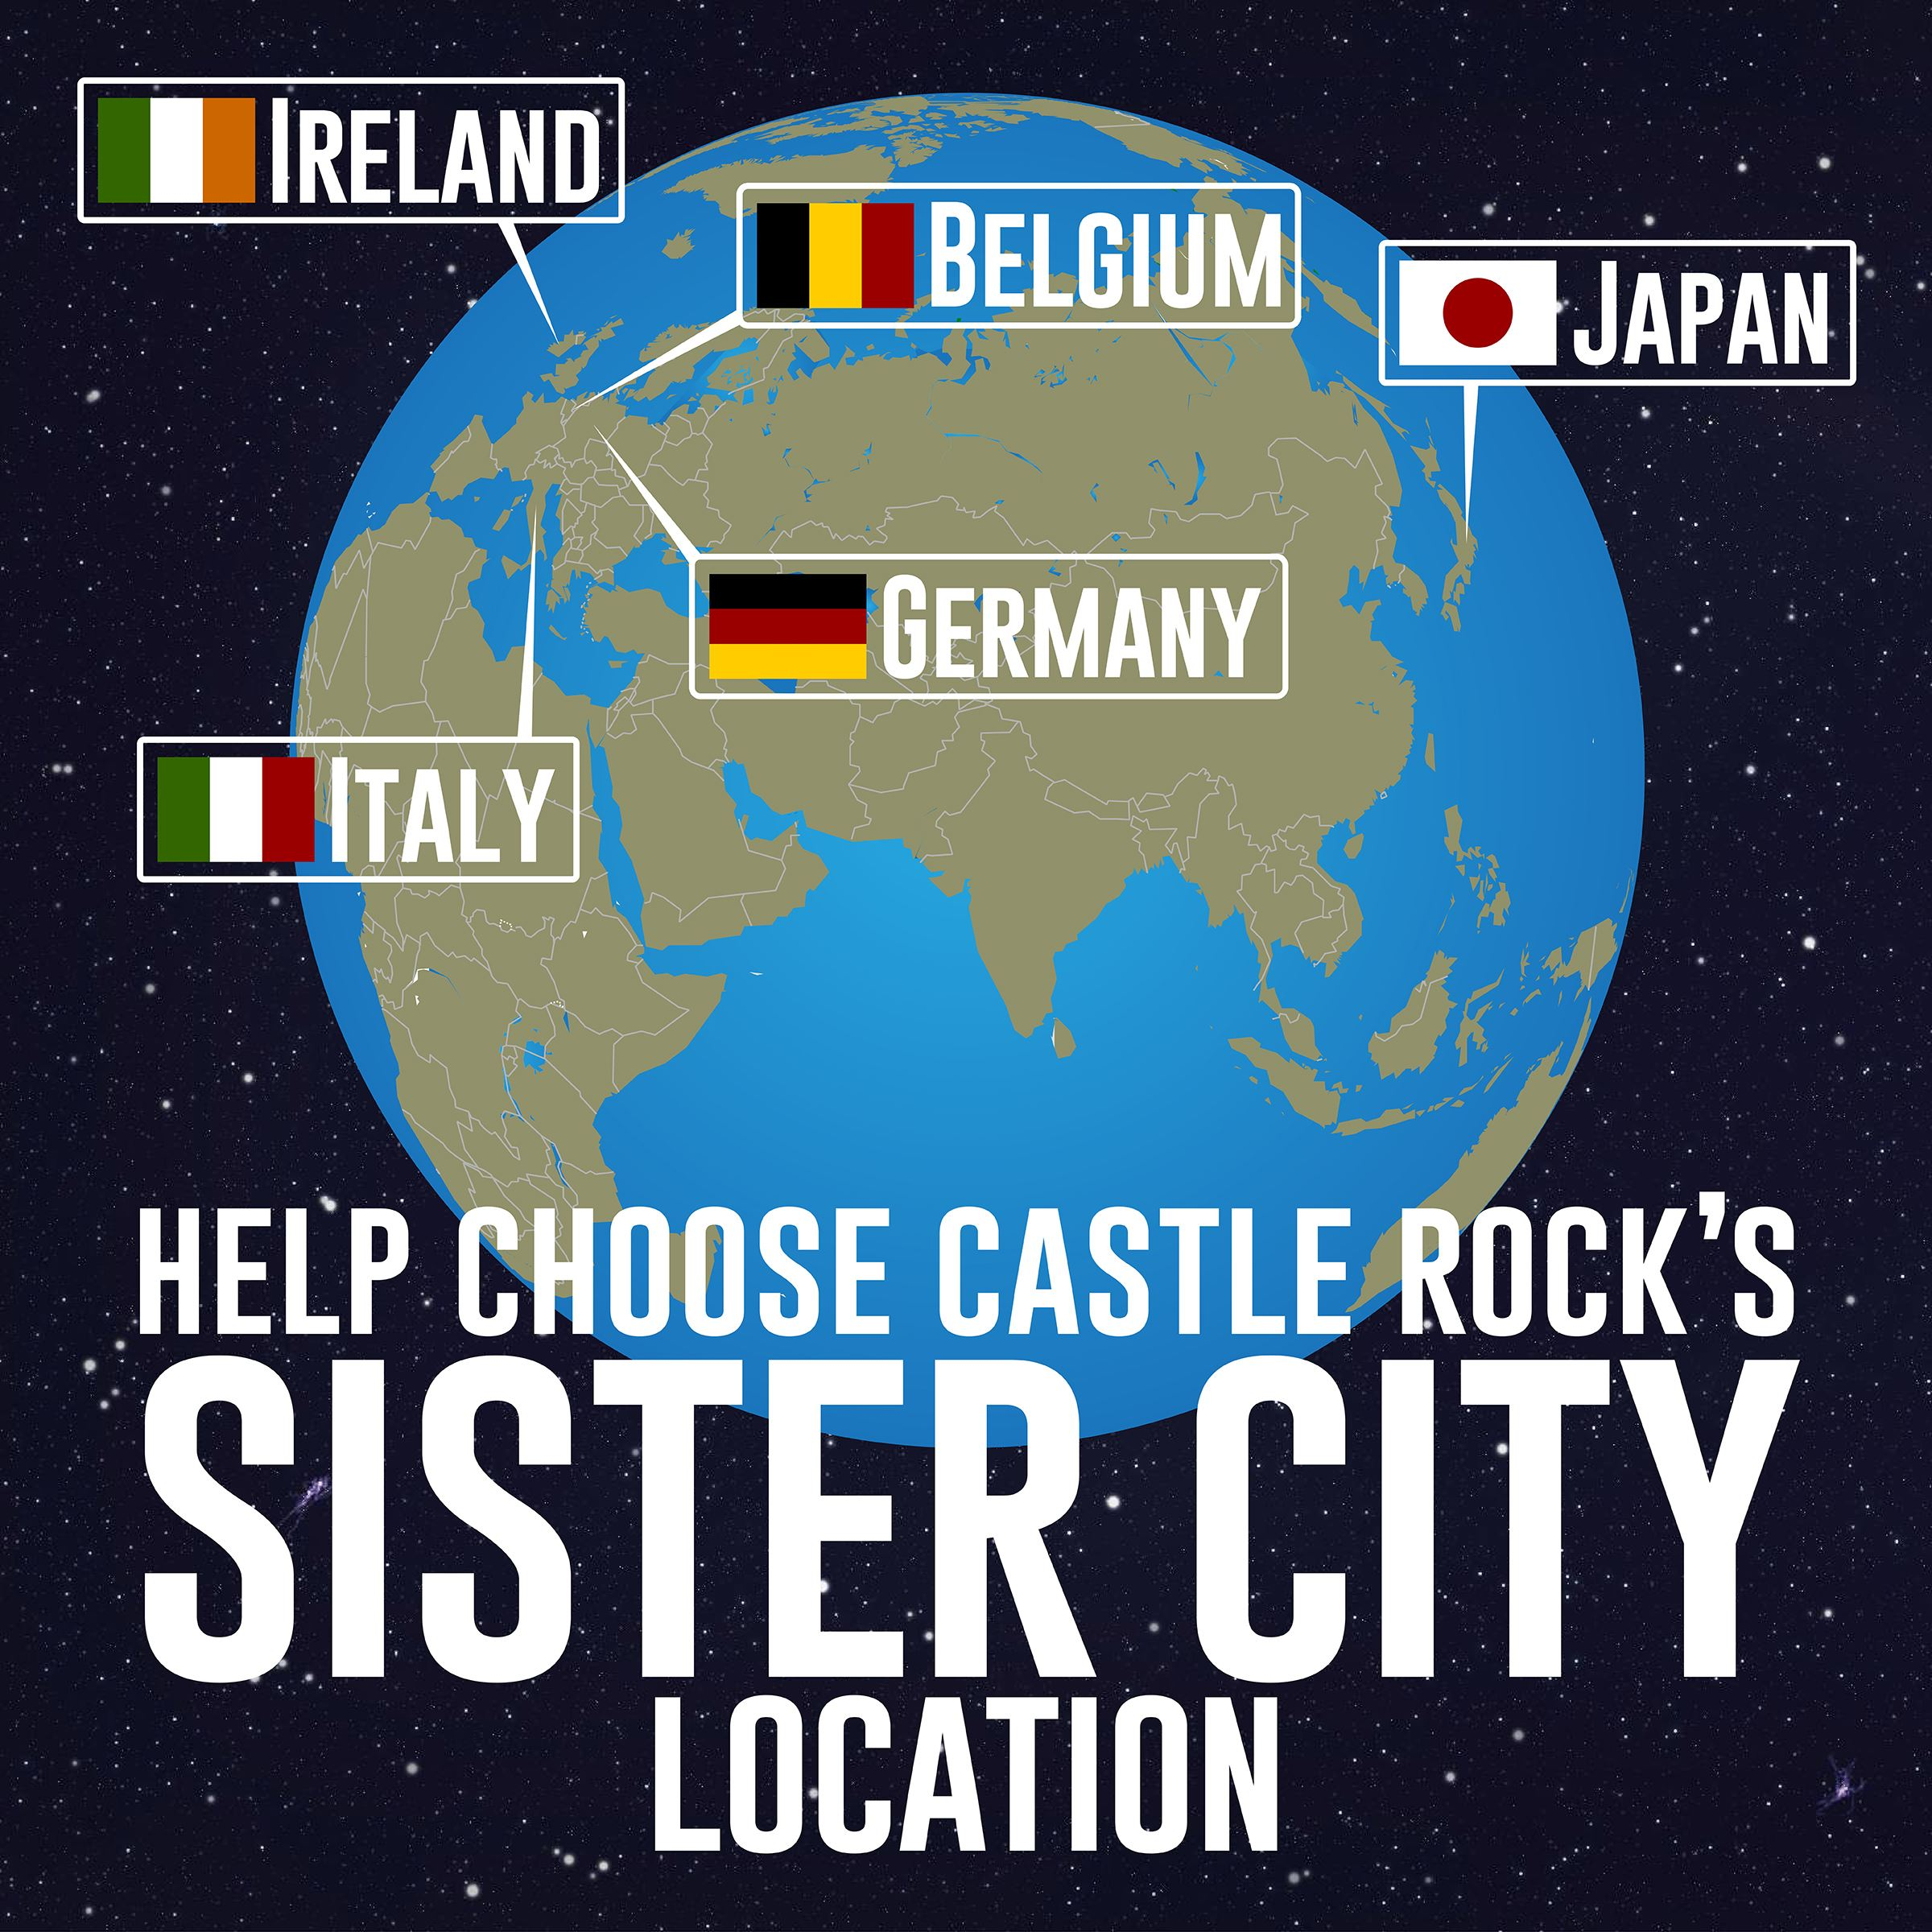 Help choose Castle Rock's sister city location.